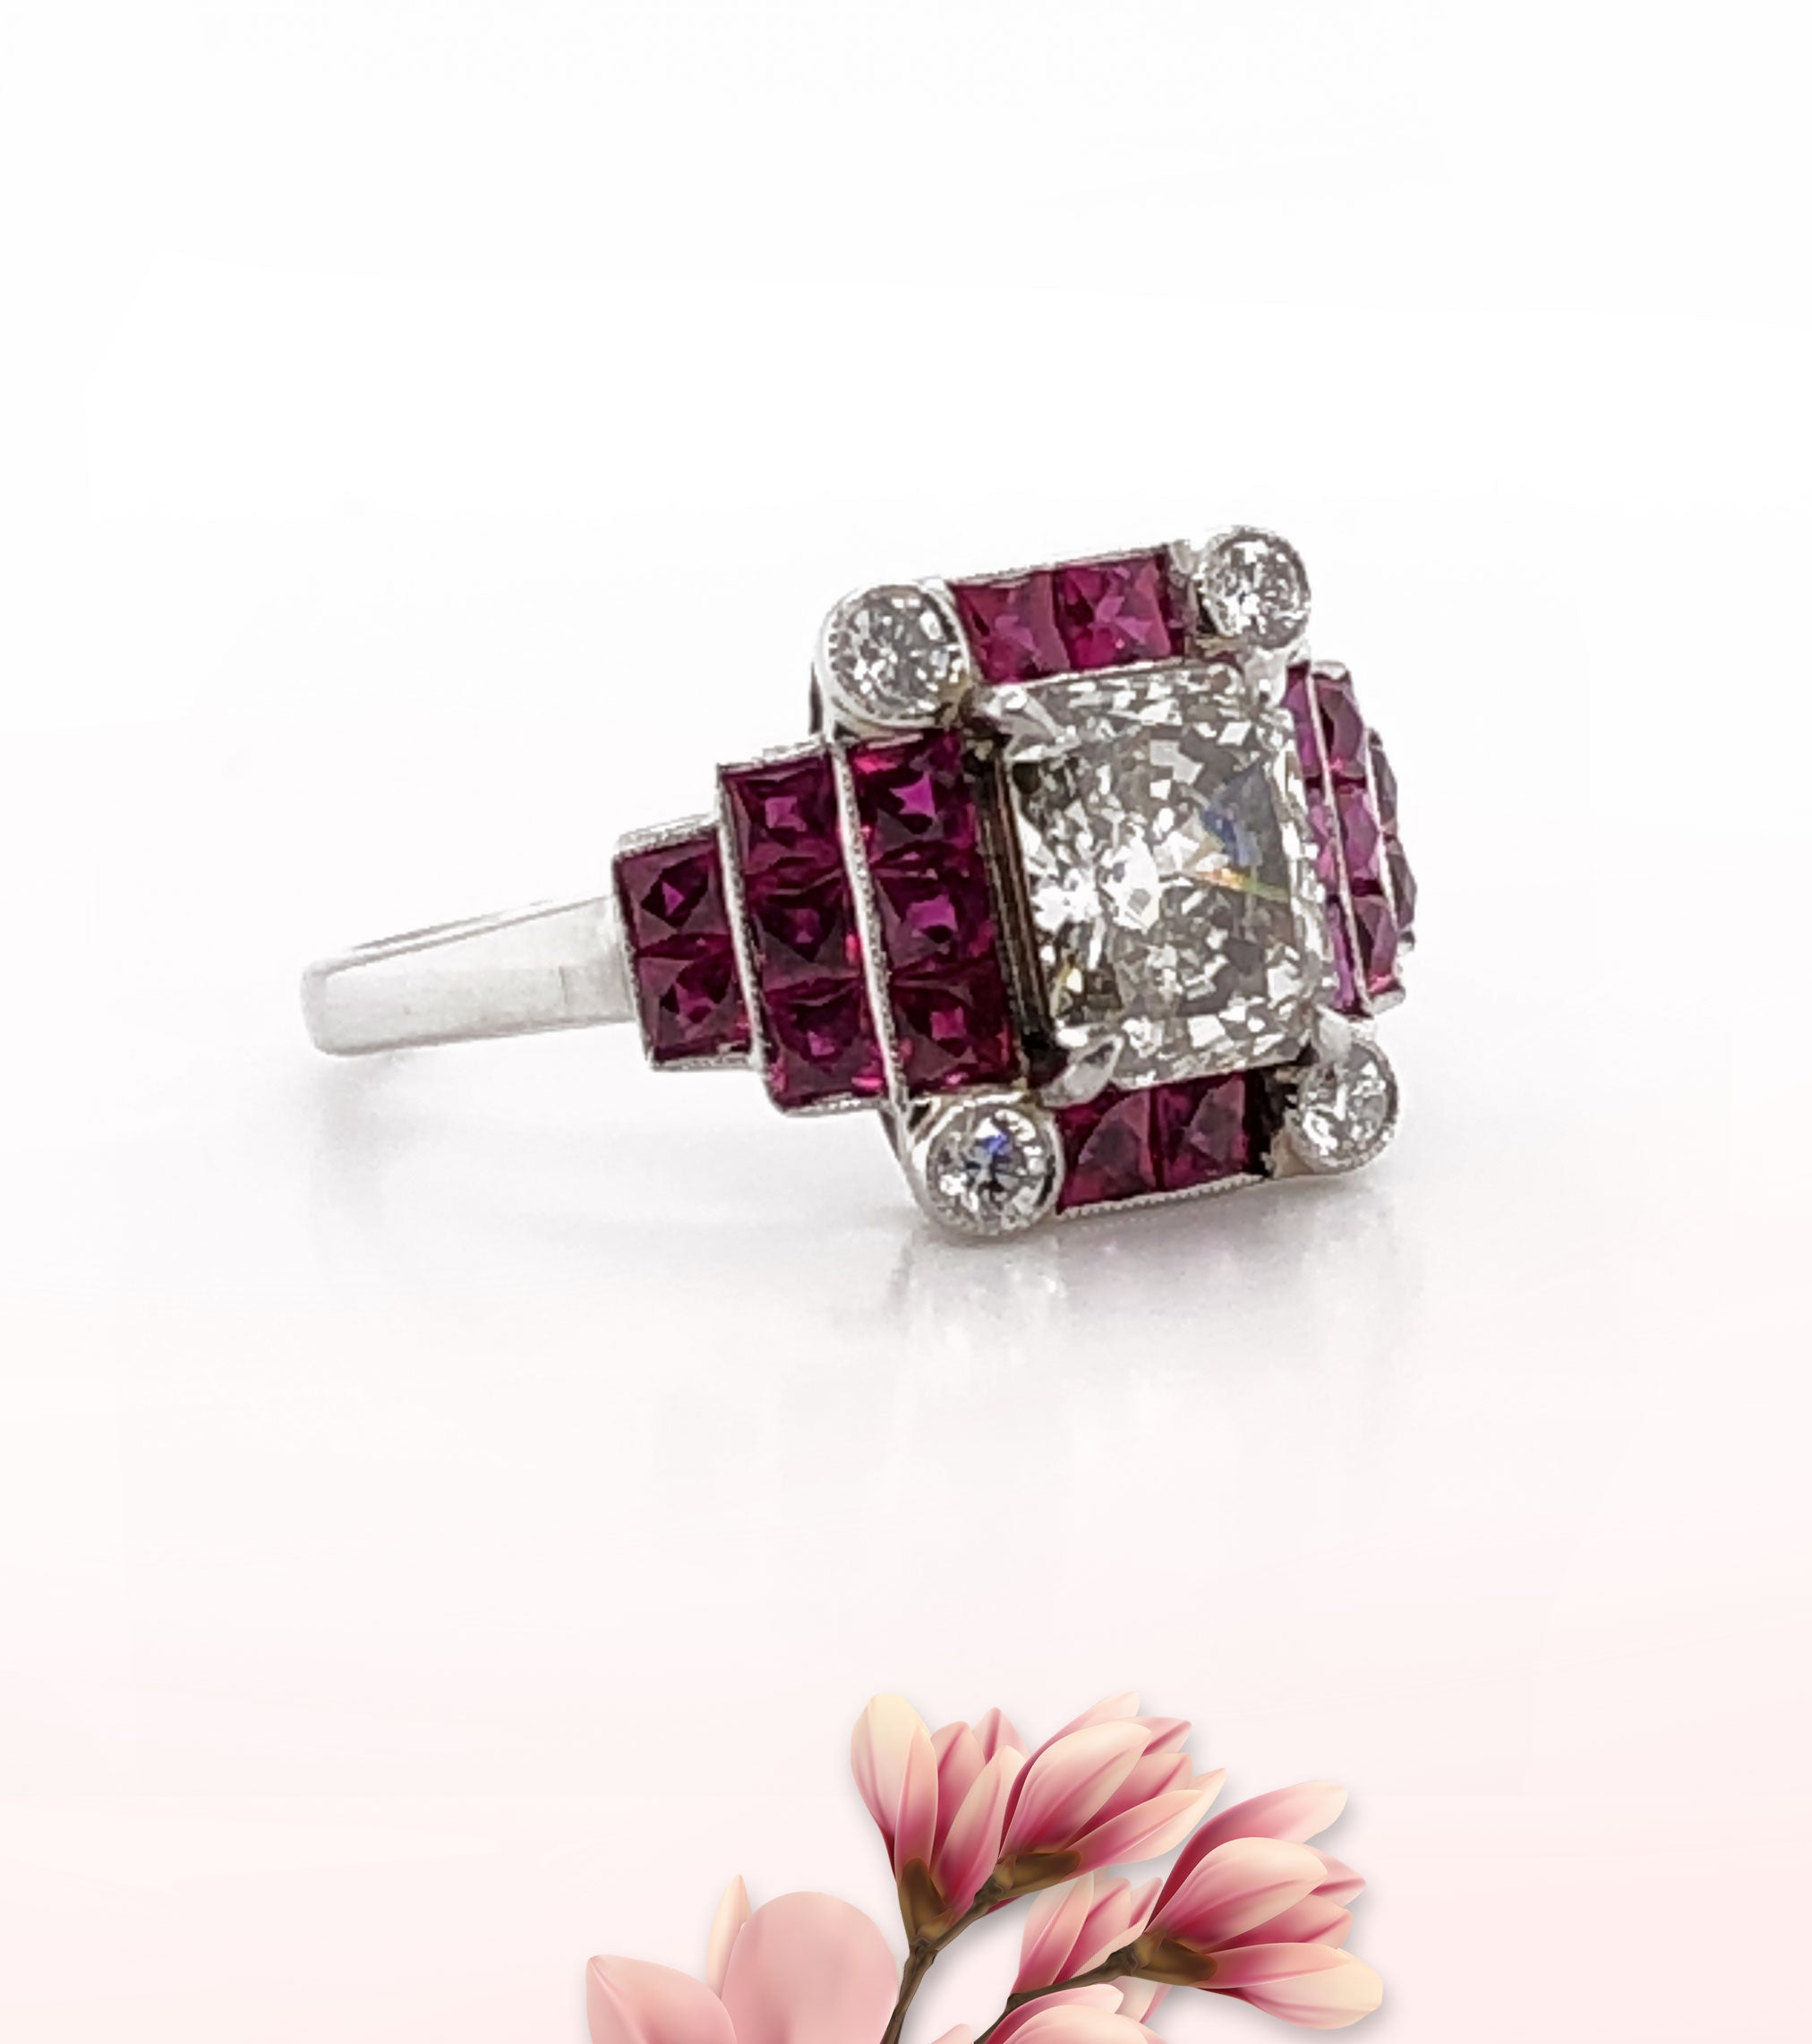 Ruby ring - Max Jewelry Inc.